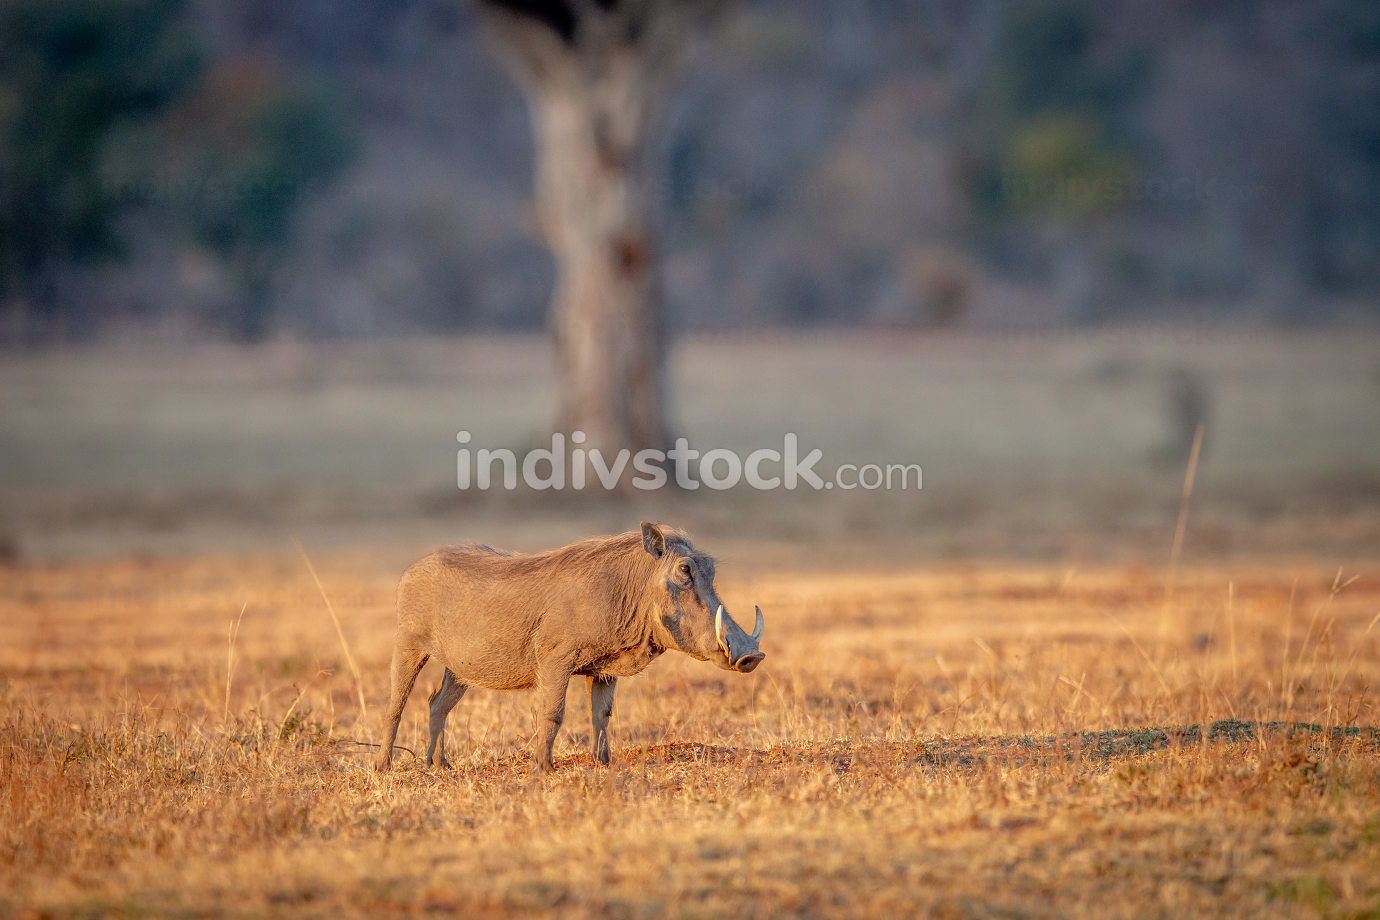 Warthog standing in the grass.